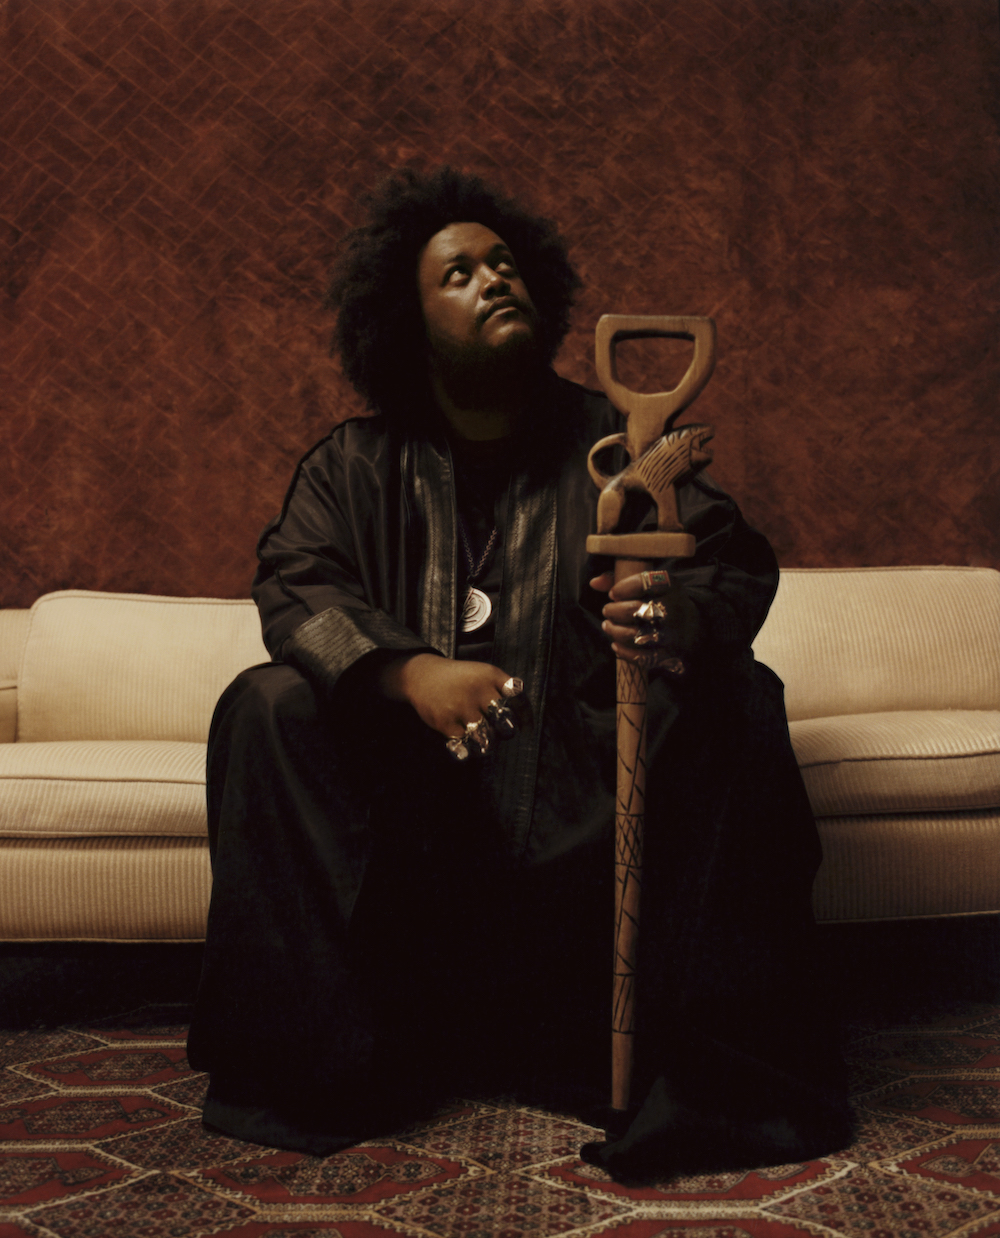 Opening Song Indonesian Vers Cover By: Saxophonist Kamasi Washington Covers A Bruce Lee Theme